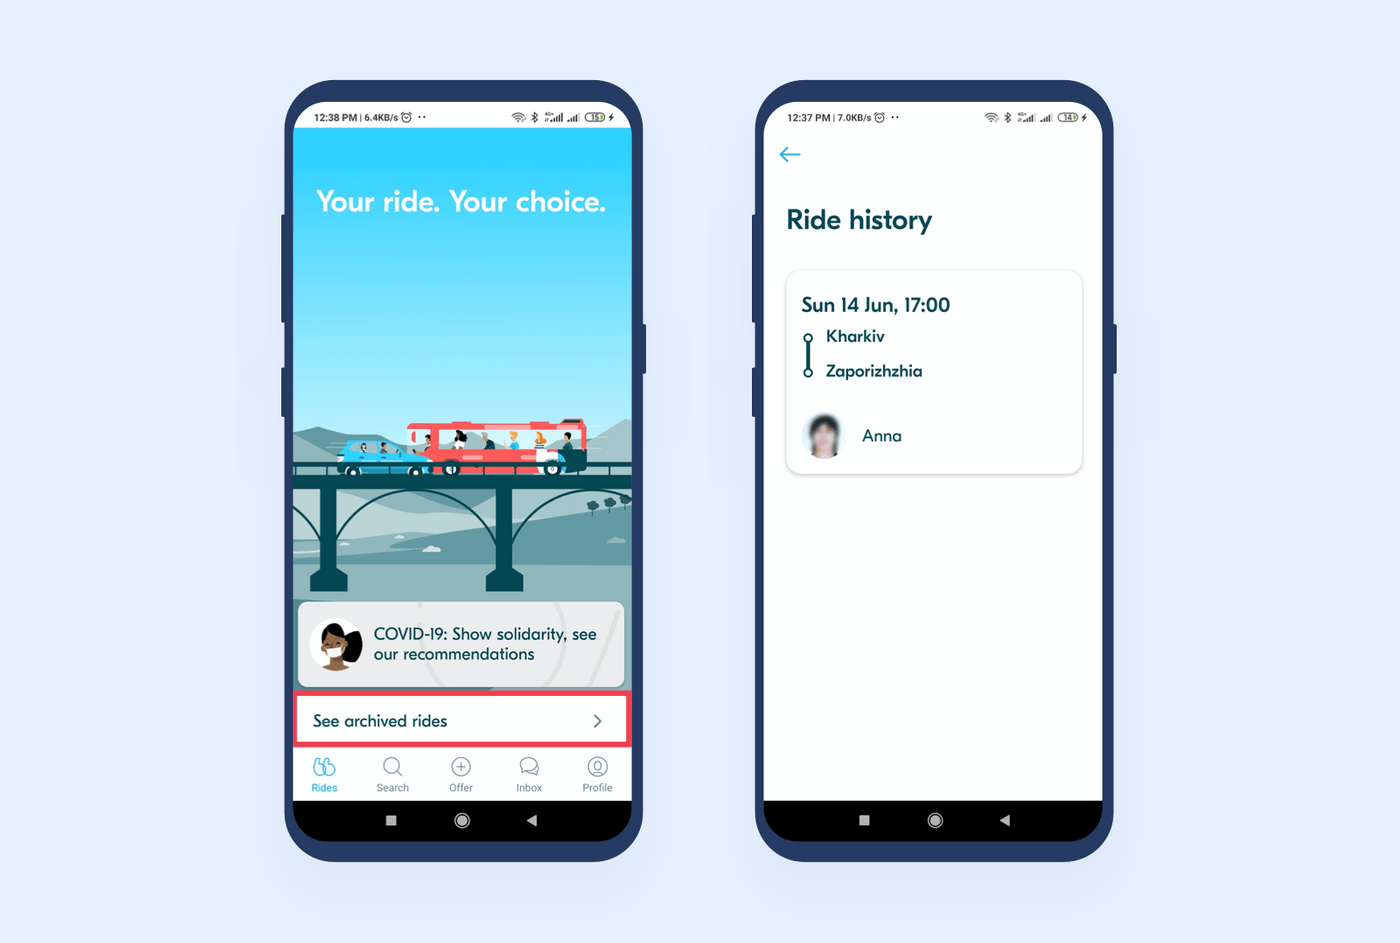 Archived rides in BlaBlaCar Android app